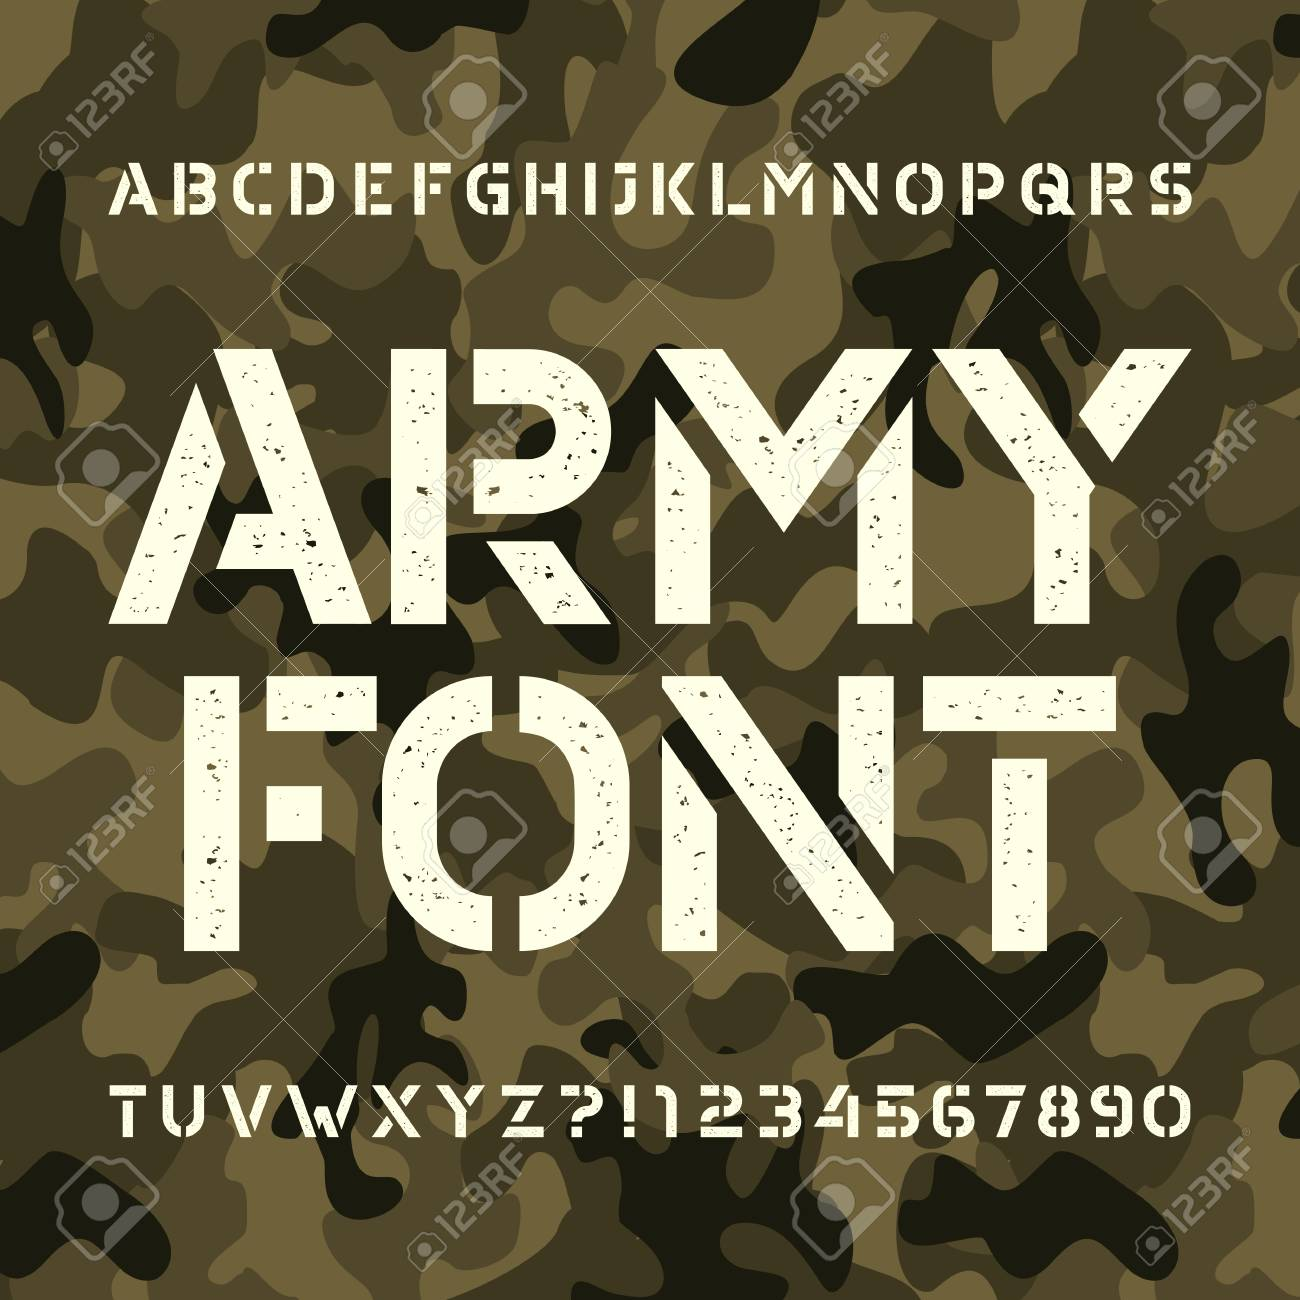 Army stencil alphabet font  Messy type letters and numbers on